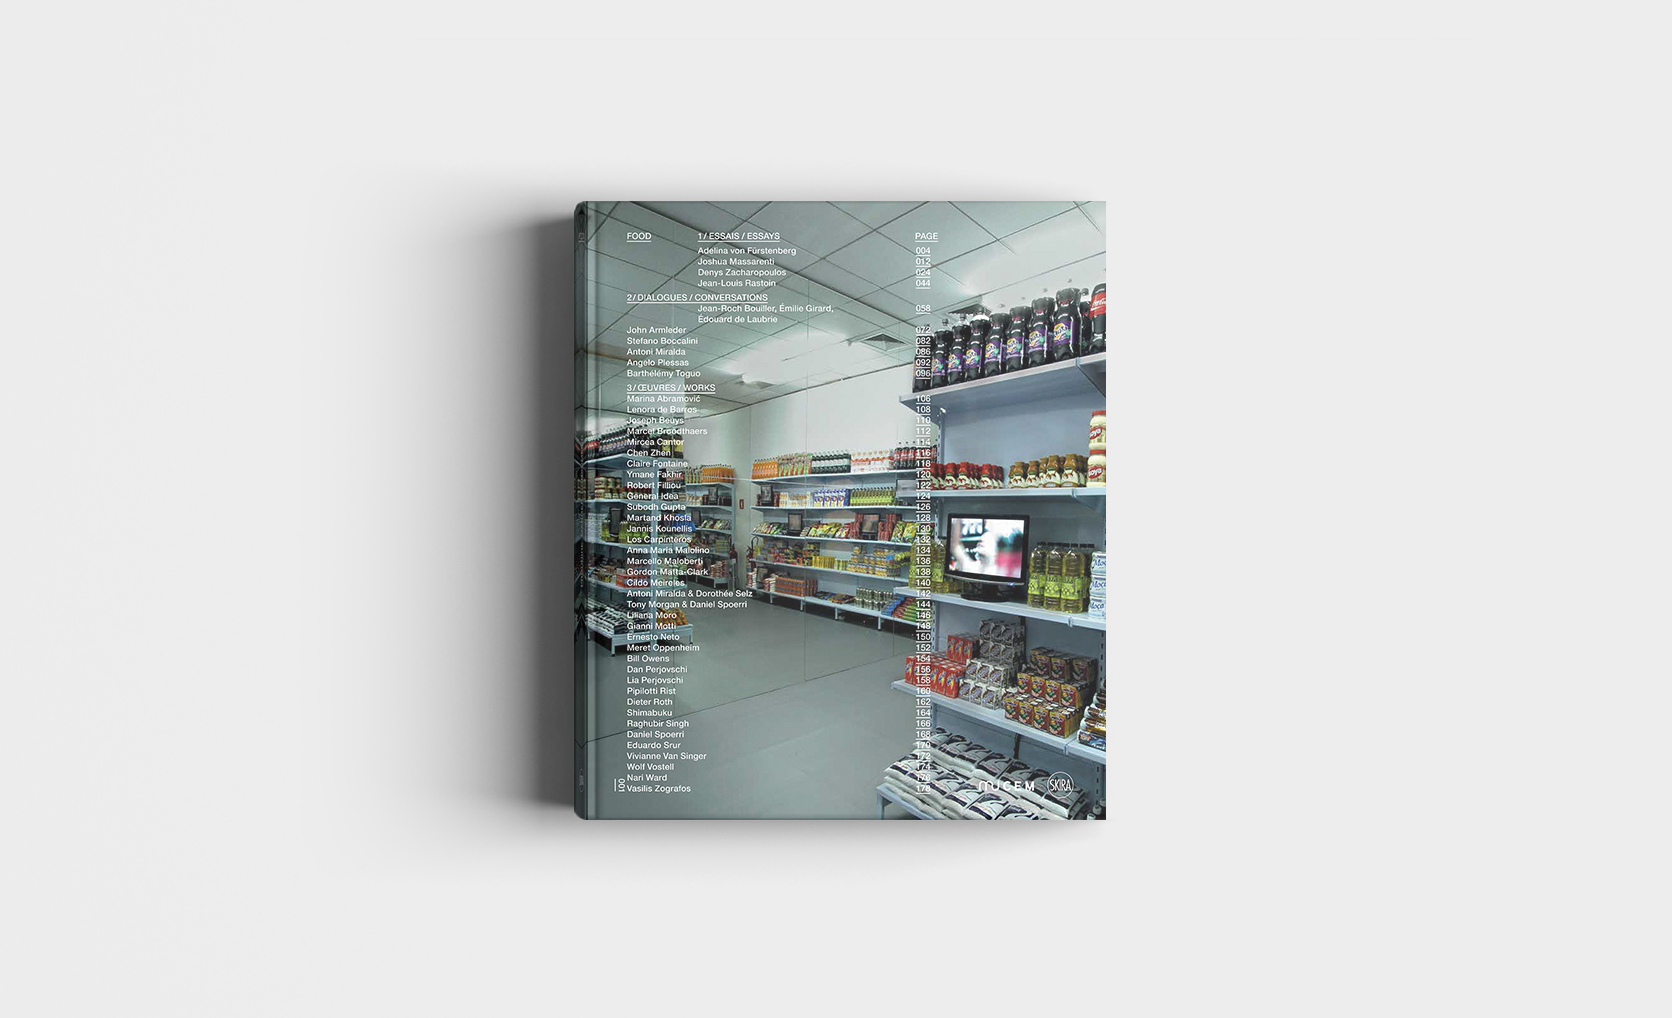 Catalogue d'exposition Food, © Mucem / Skira, 2014